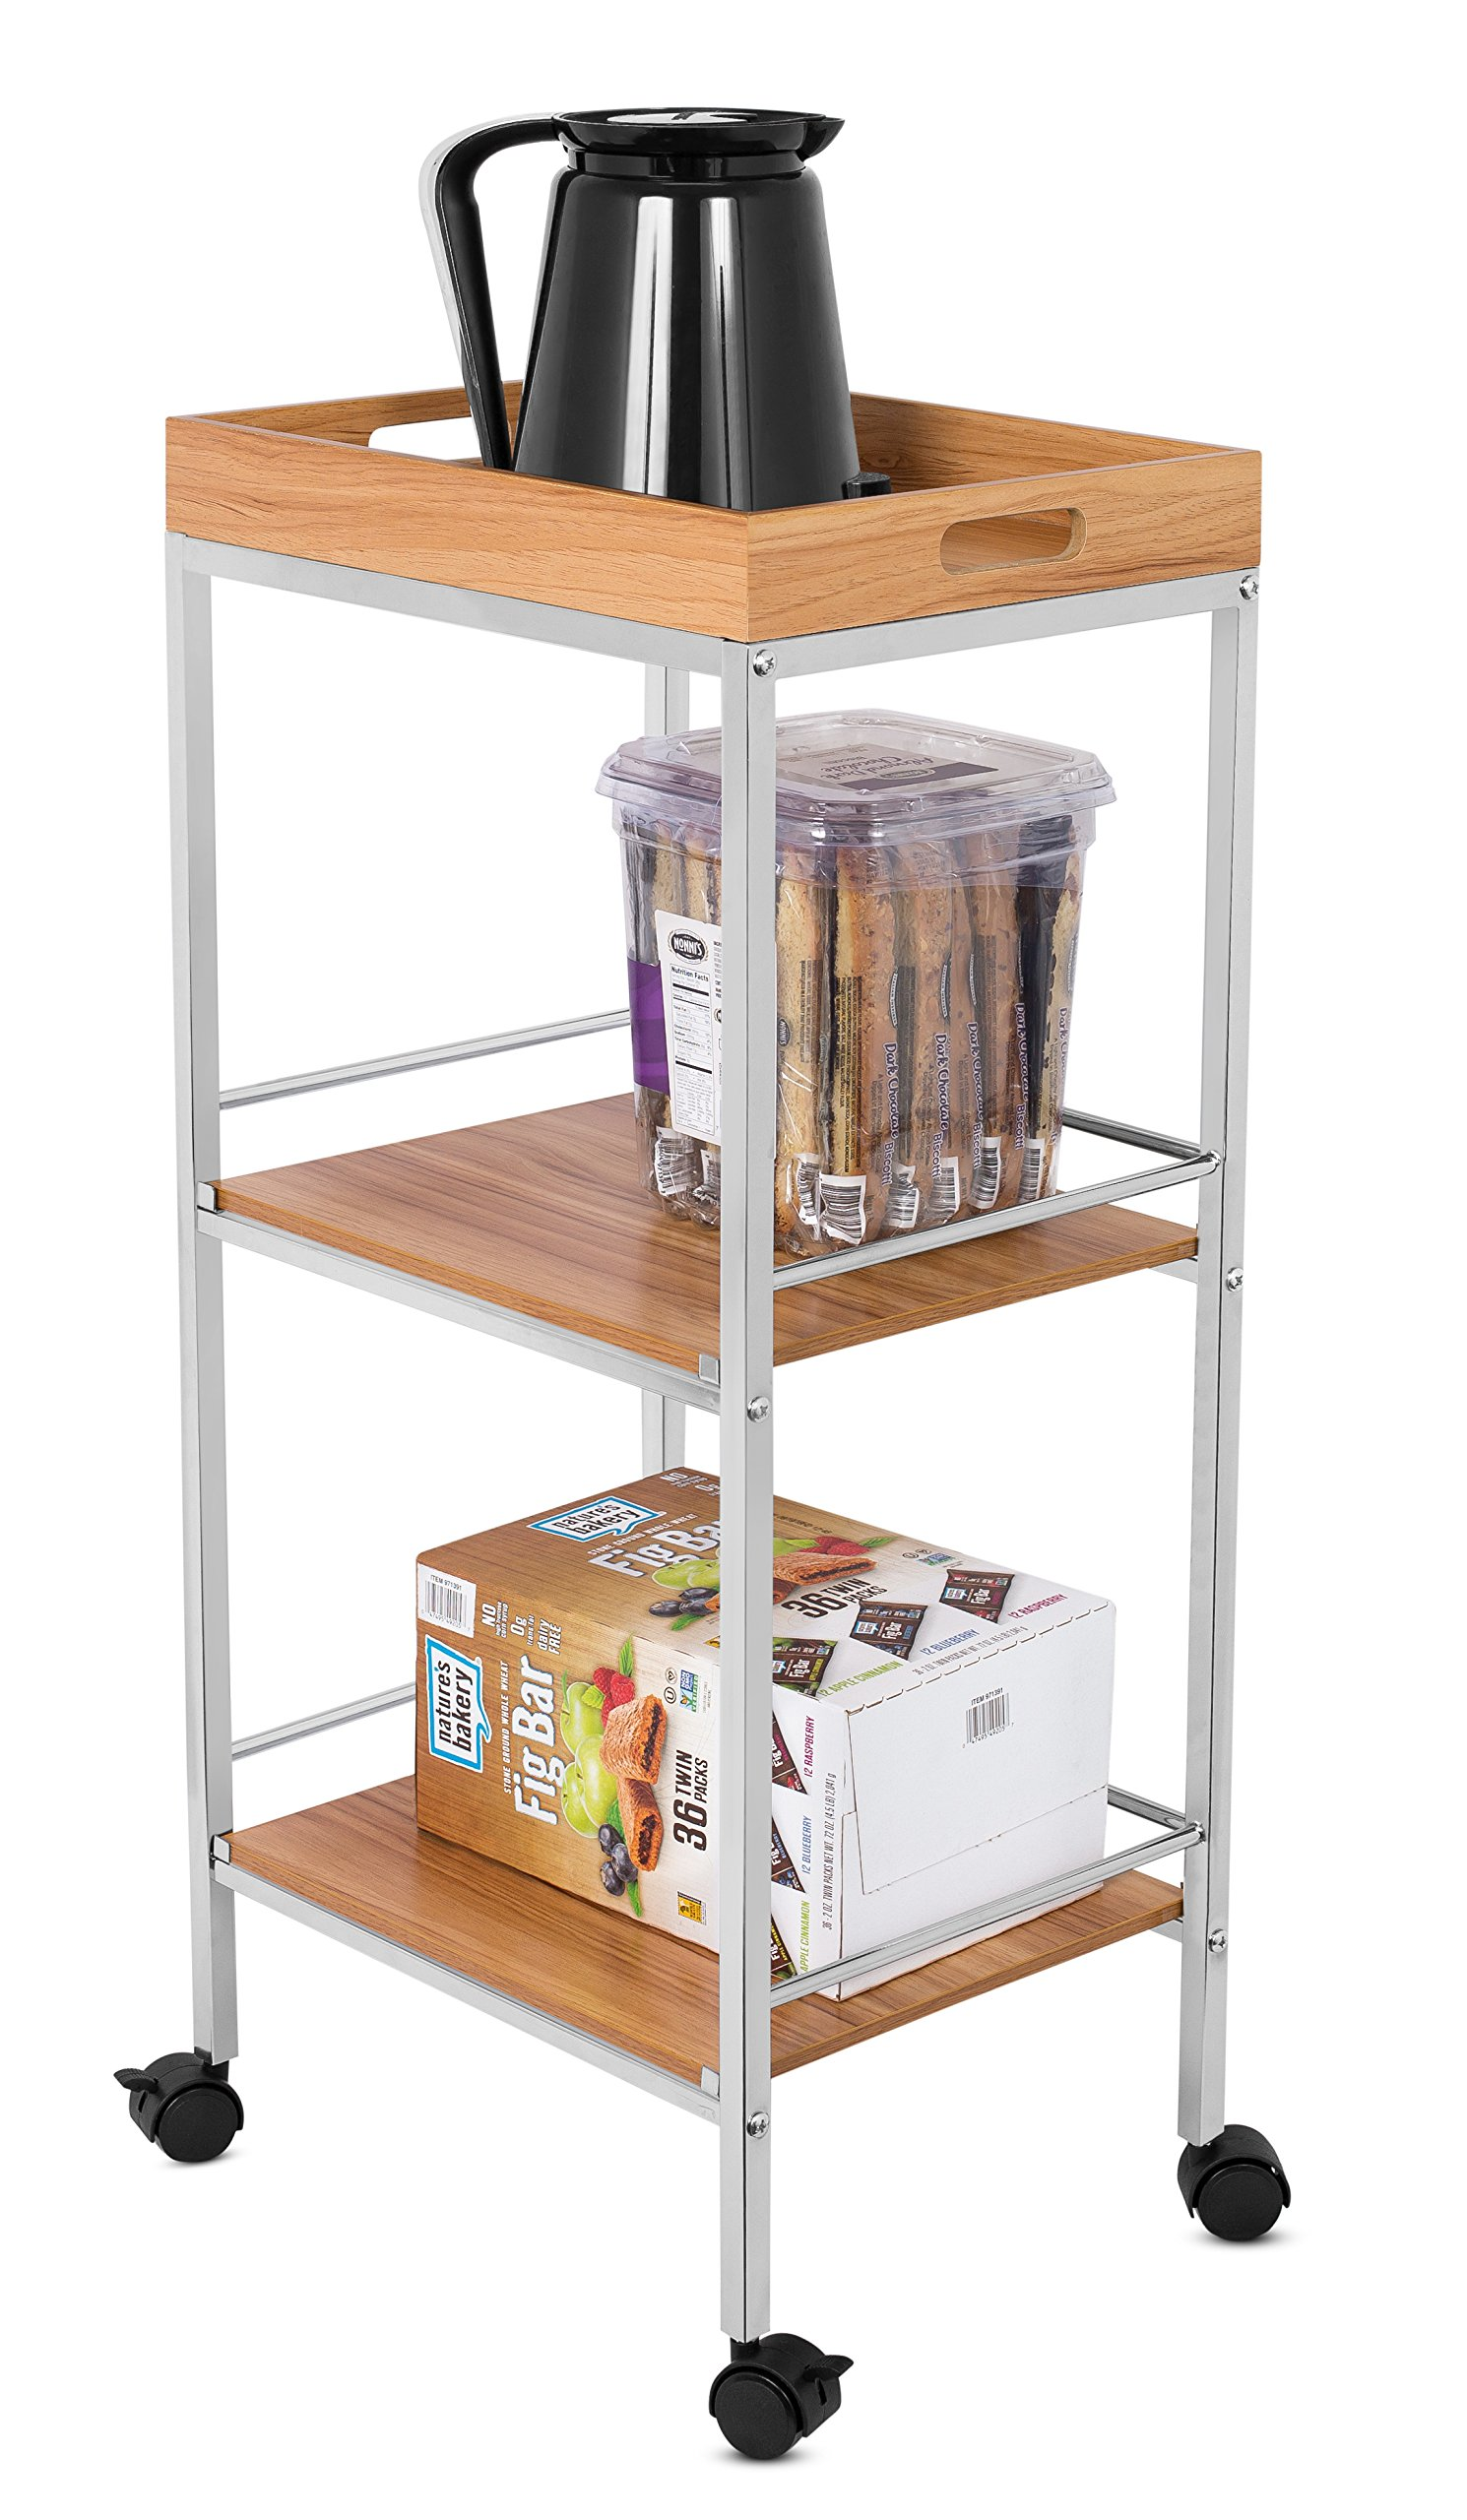 BirdRock Home 3-Tier Rolling Bar Serving Cart | Kitchen Bathroom Trolley Locking Wheels | Removable Trays | Portable Metal Utility Storage | Tea Coffee Drink Home Cart